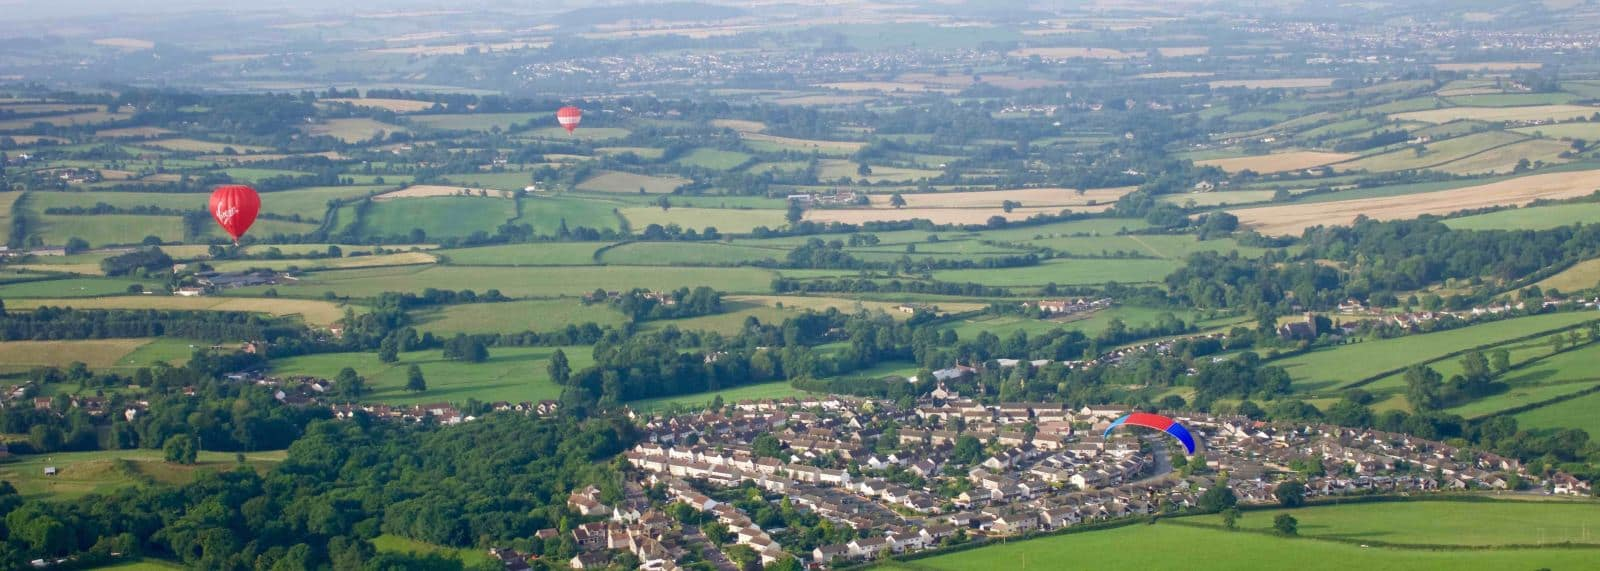 Paramotoring past the Virgin Hot Air Balloon near Bristol